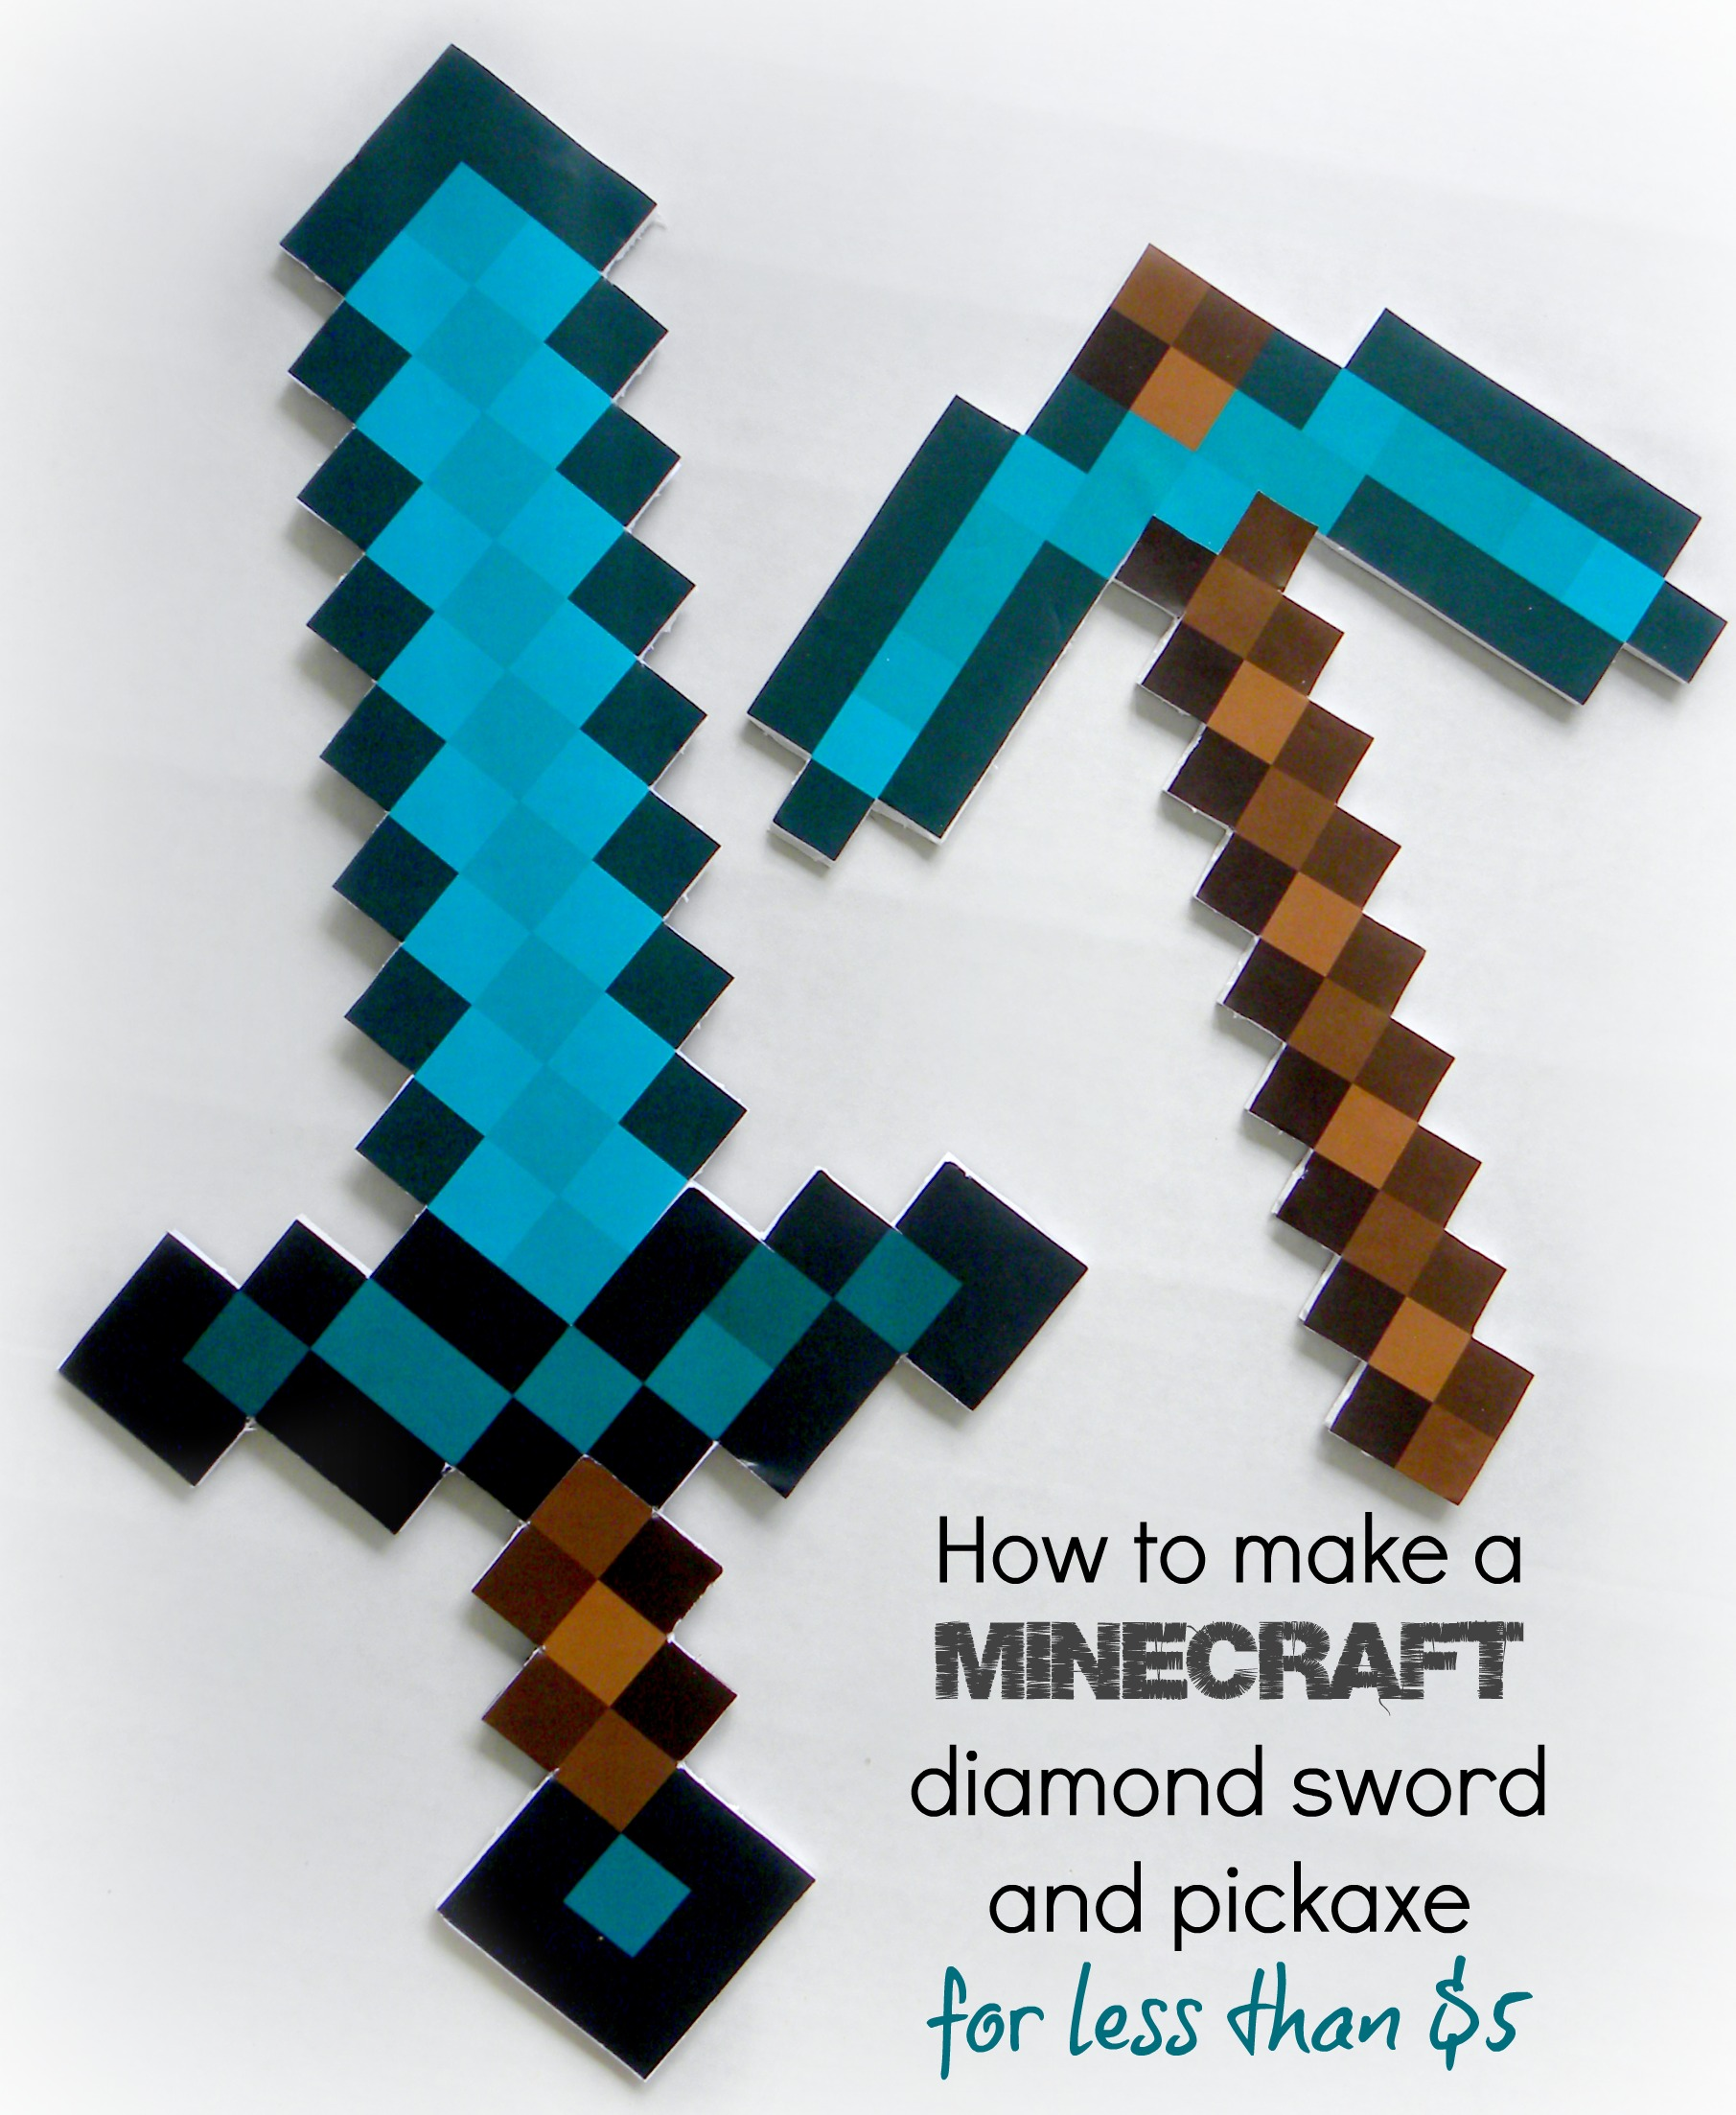 How To Make A Minecraft Diamond Sword And Pickaxe Fold An Origami Costume